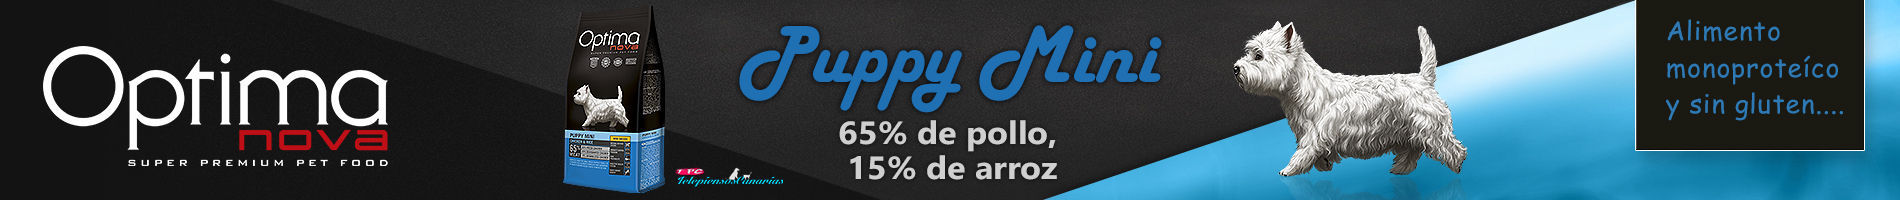 Optima nova puppy mini con 65% pollo y 15% arroz